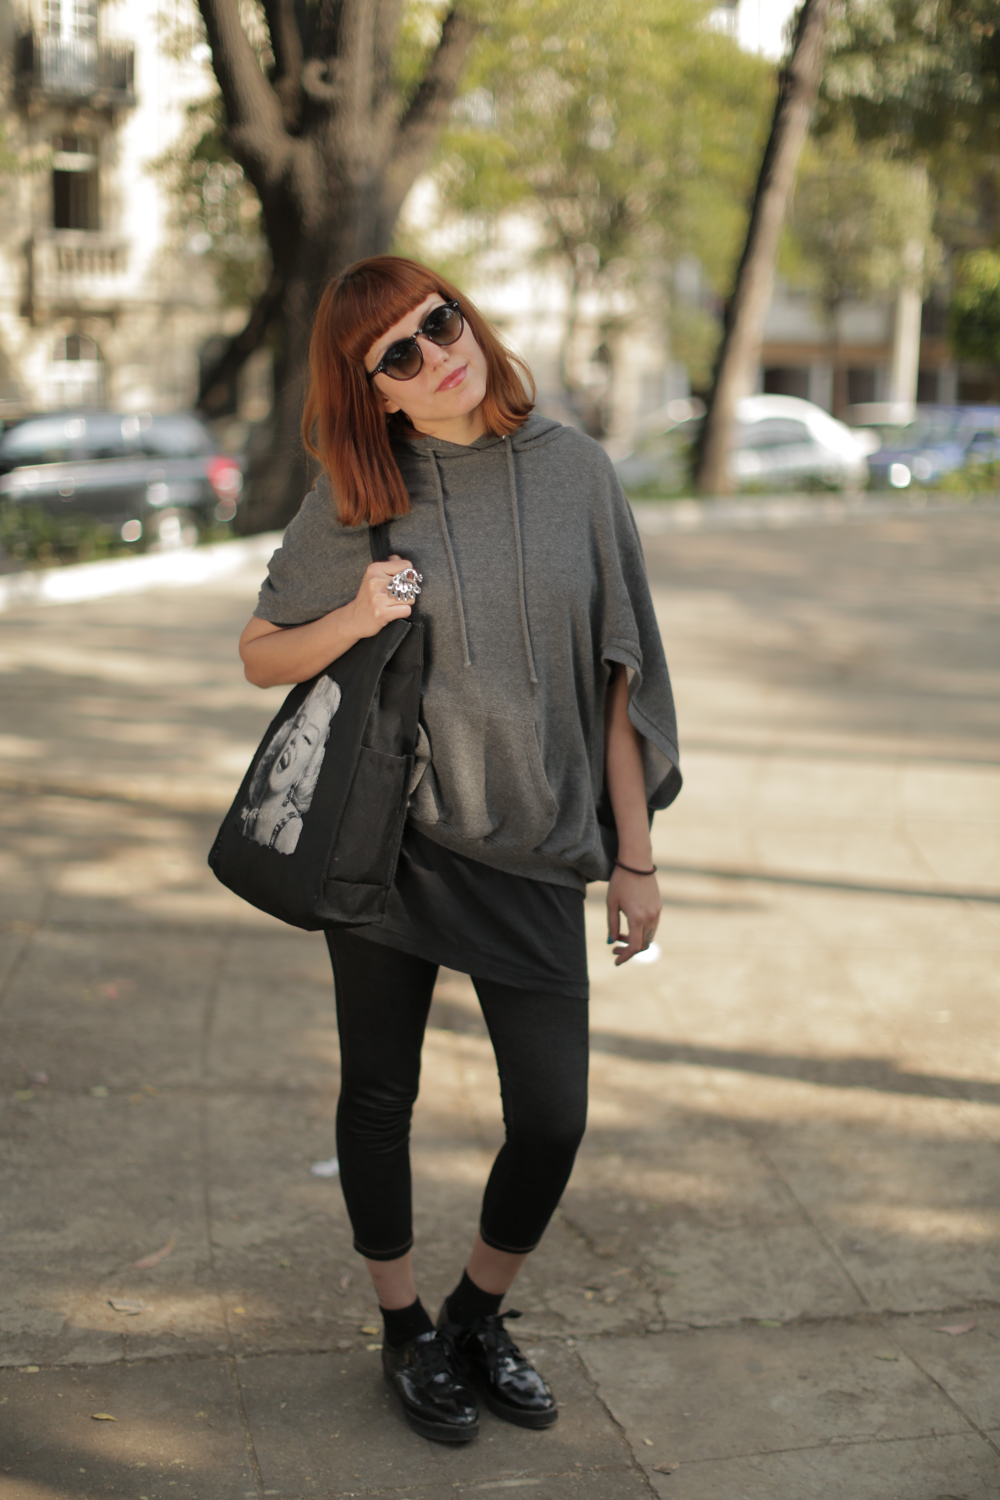 afcortes_streetstyle_5750.jpg